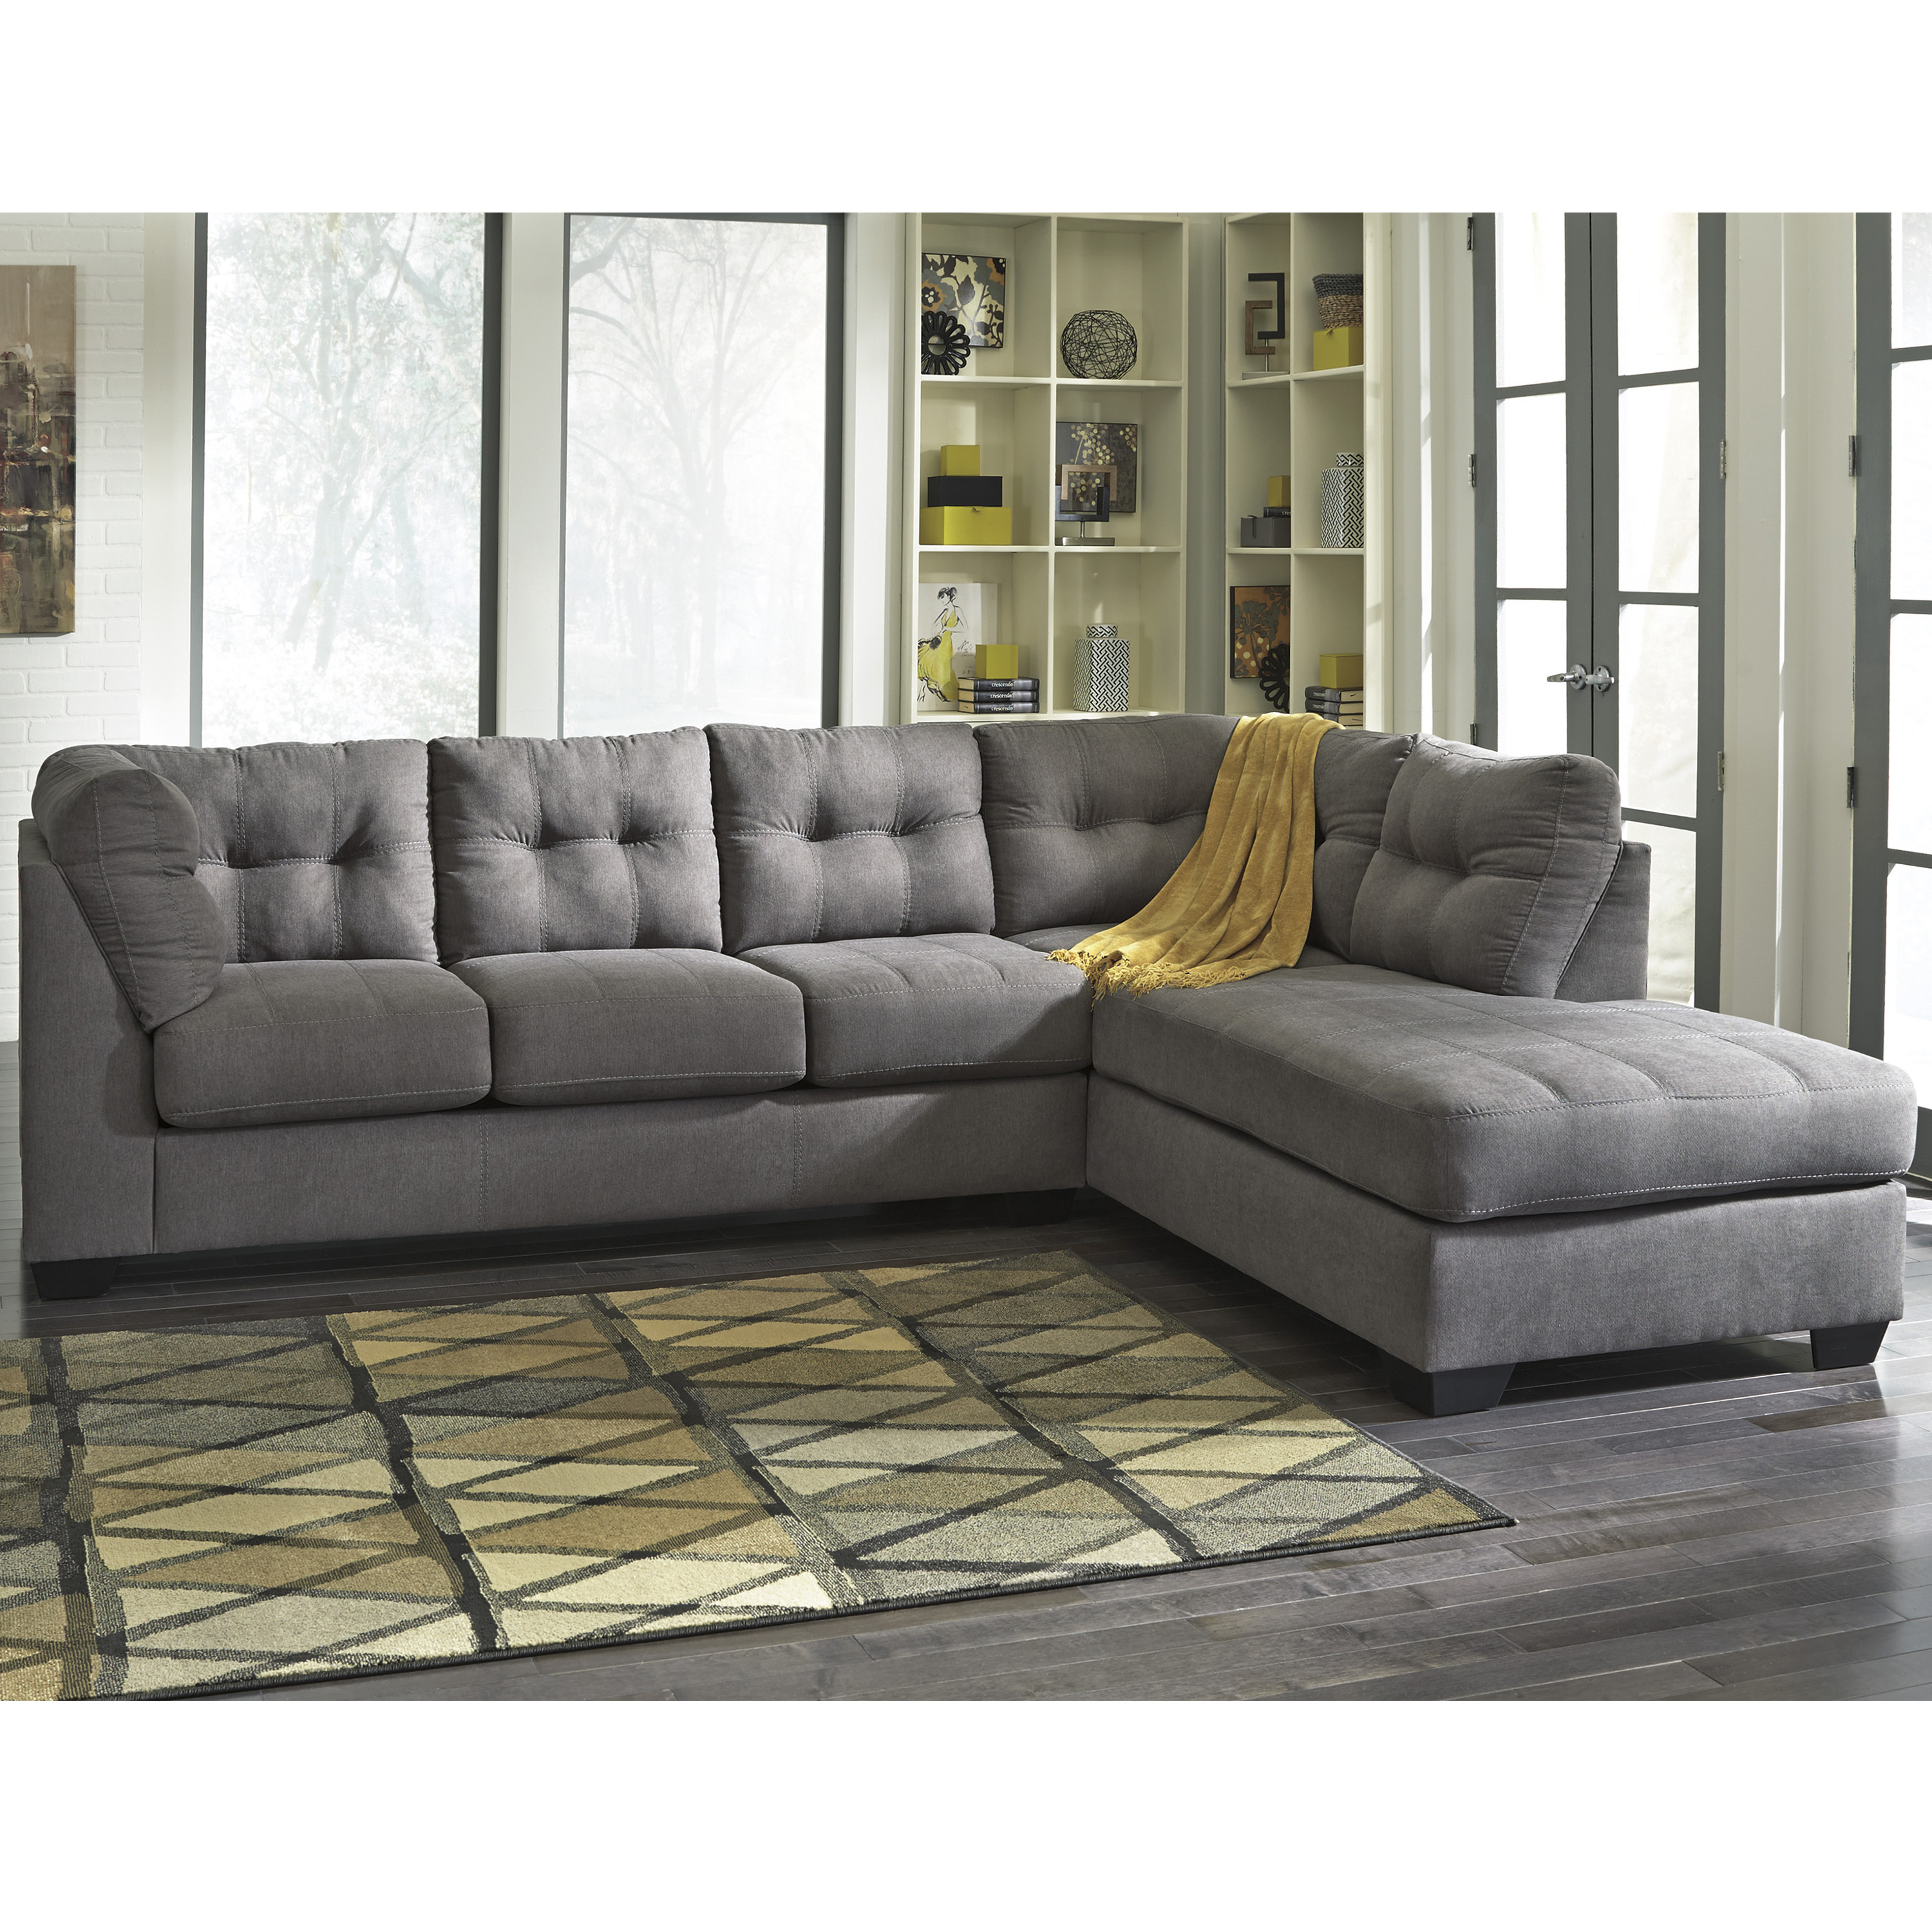 Lucy Dark Grey 2 Piece Sleeper Sectionals With Raf Chaise Within Preferred Furniture: Cool Cheap Sectional For Elegant Living Room Design (View 14 of 20)